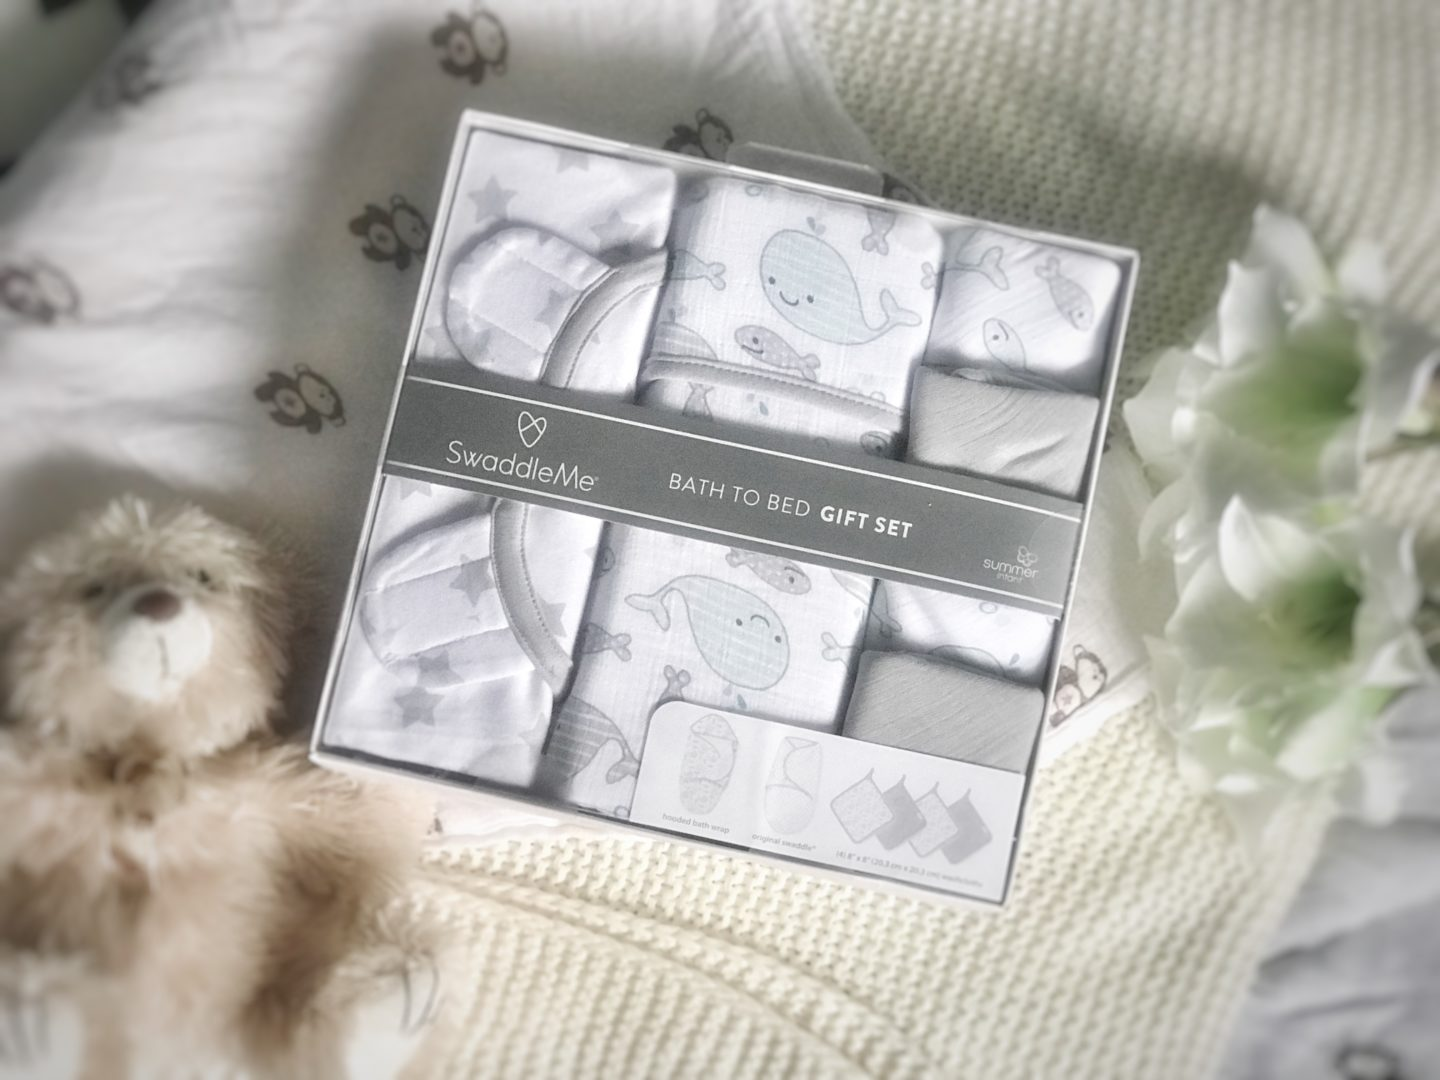 the swaddleme bath to bed gift set in its original packaging next to some fake flowers and a teddy bear